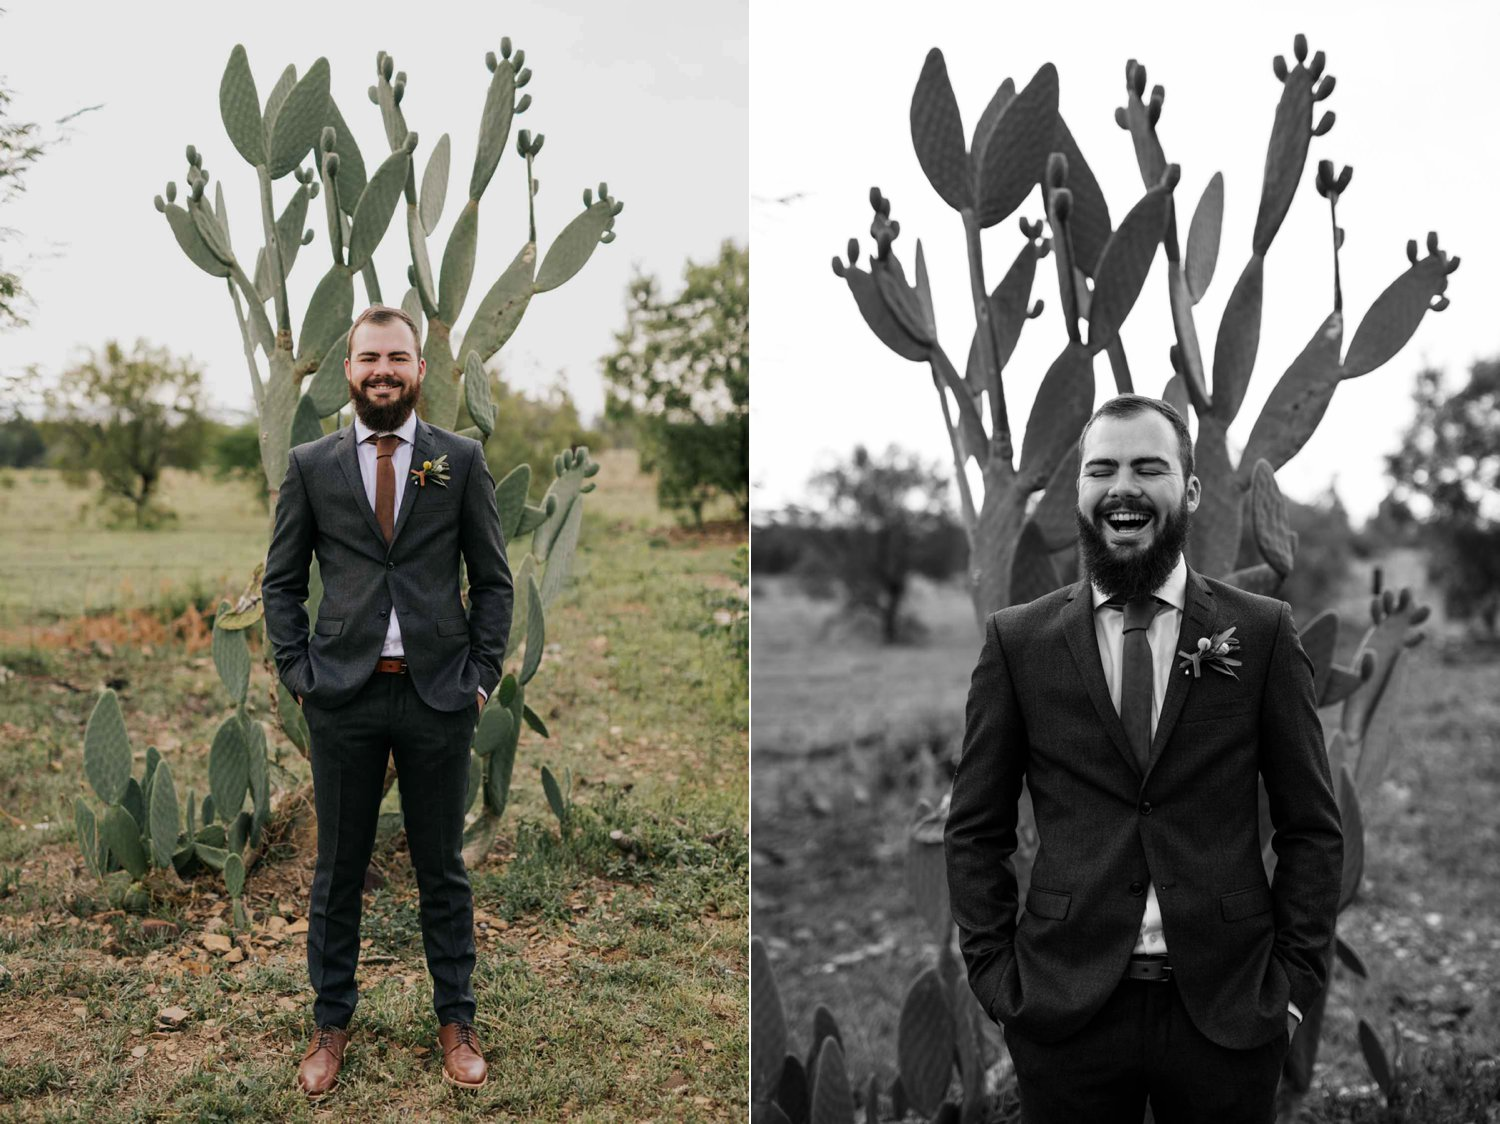 Portrait of groom in front on a cactus dressed in a trendy outfit consisting of a grey Tiger of Sweden jacket, leather tie, white shirt, fynbos boutineer and brown leather shoes